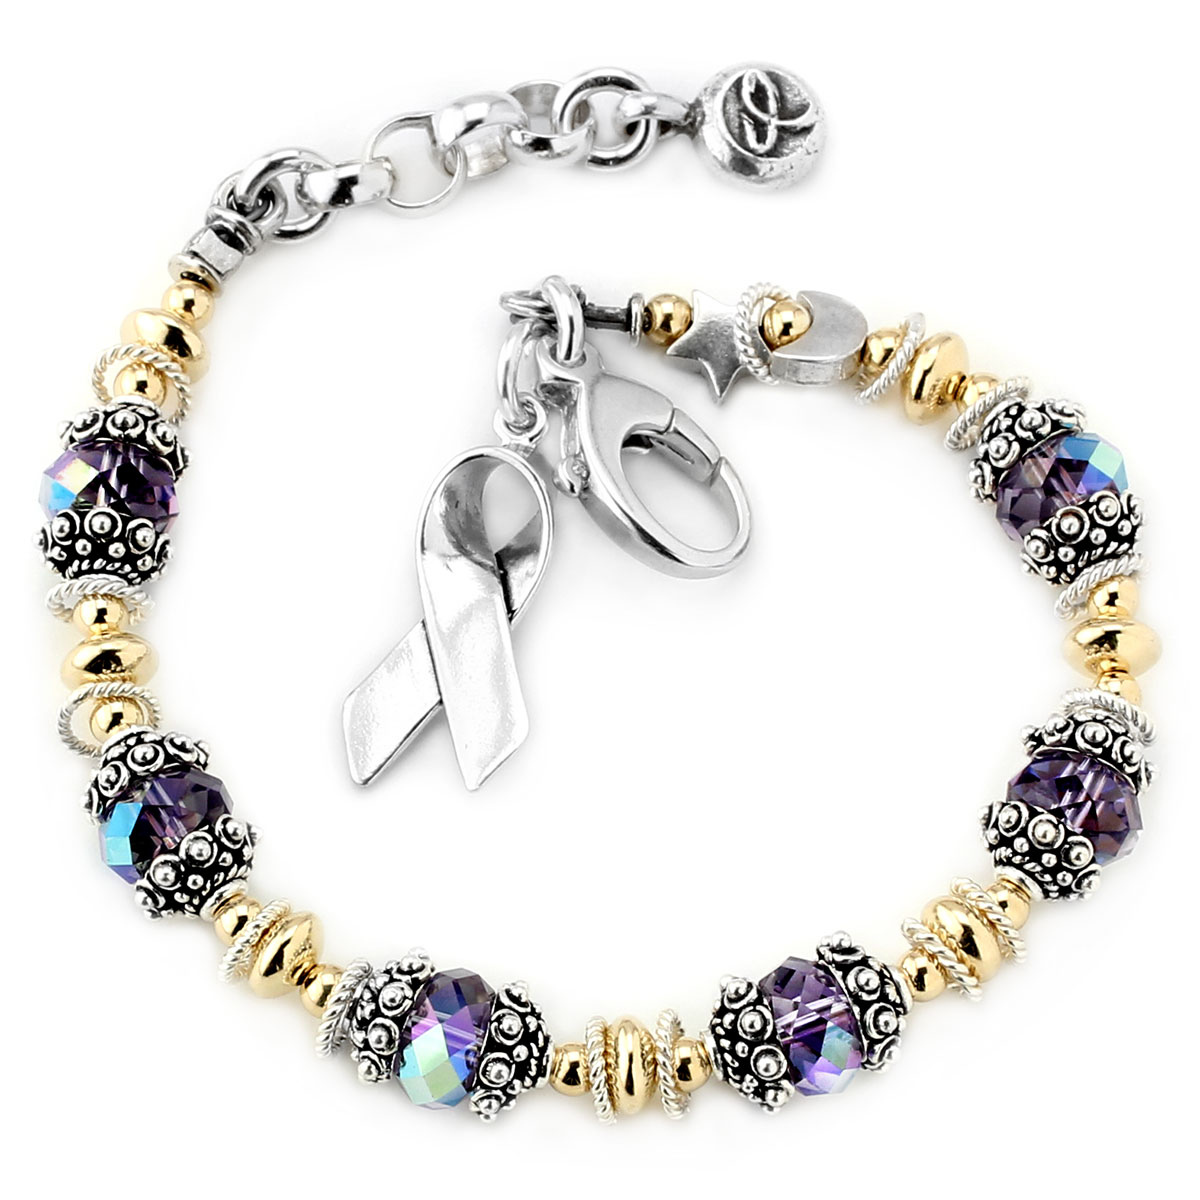 159319-General Cancer - Awareness Bracelet